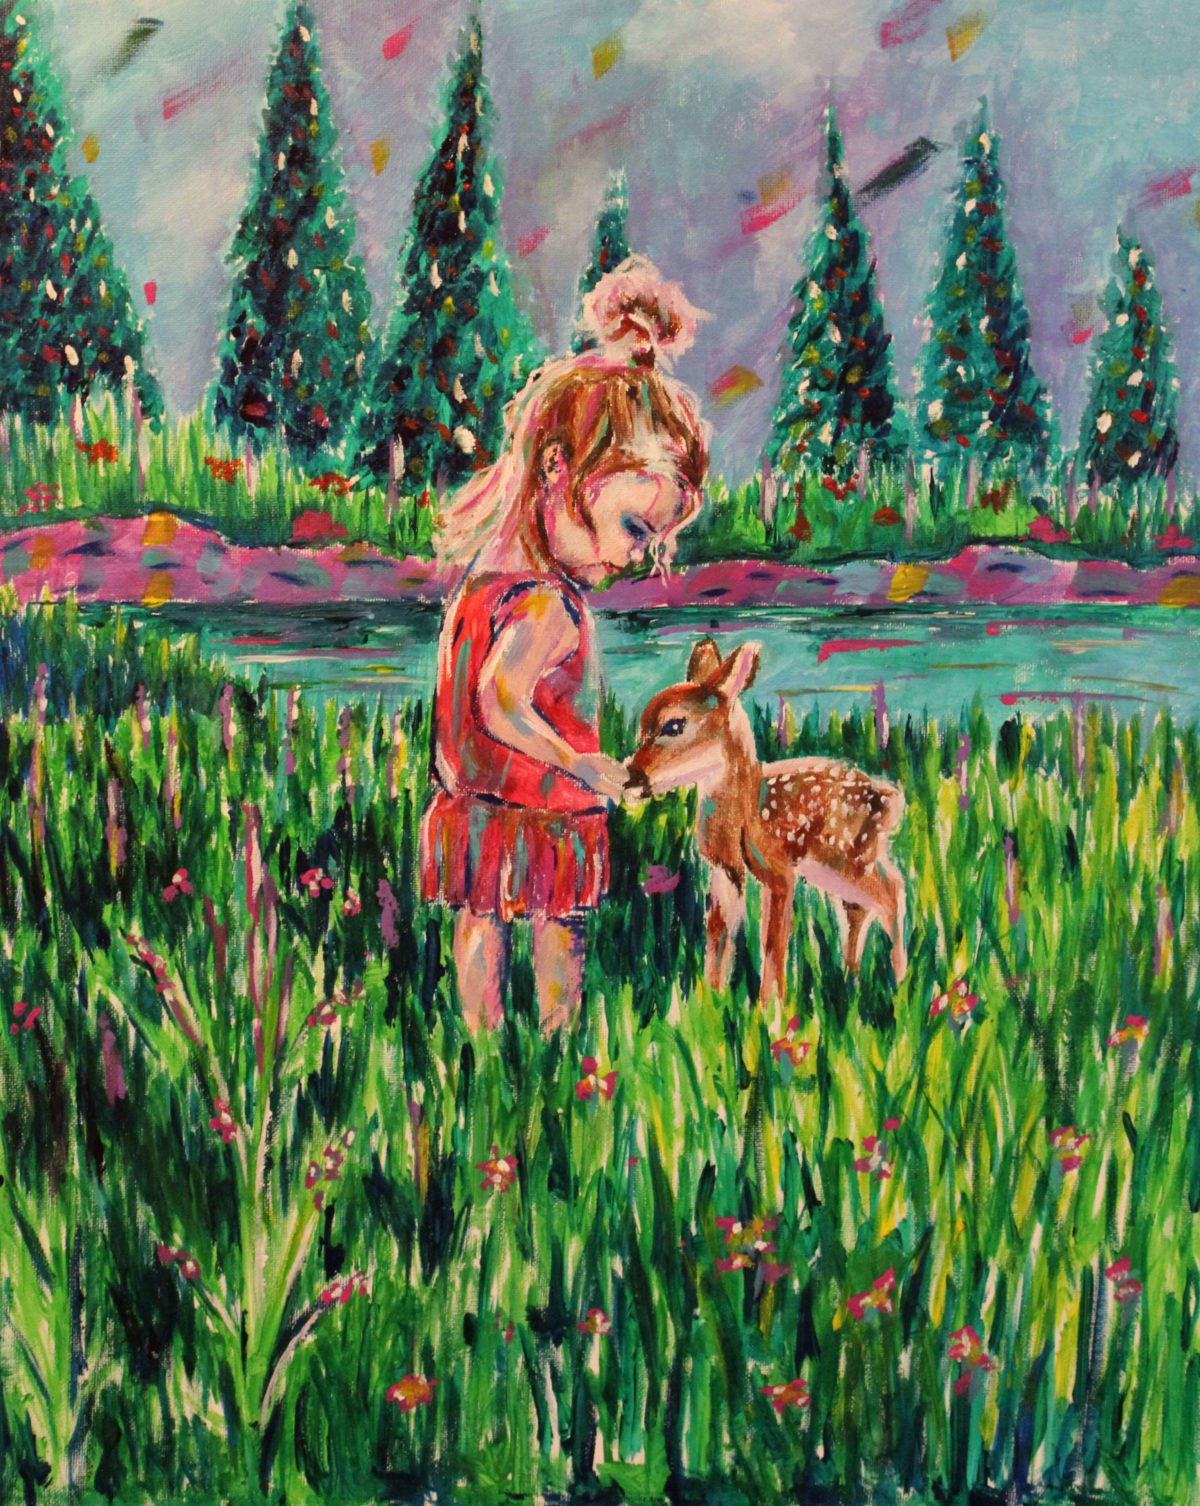 A girl and her Fawn 16x20 Acrylic on Canvas by Taylor Wise